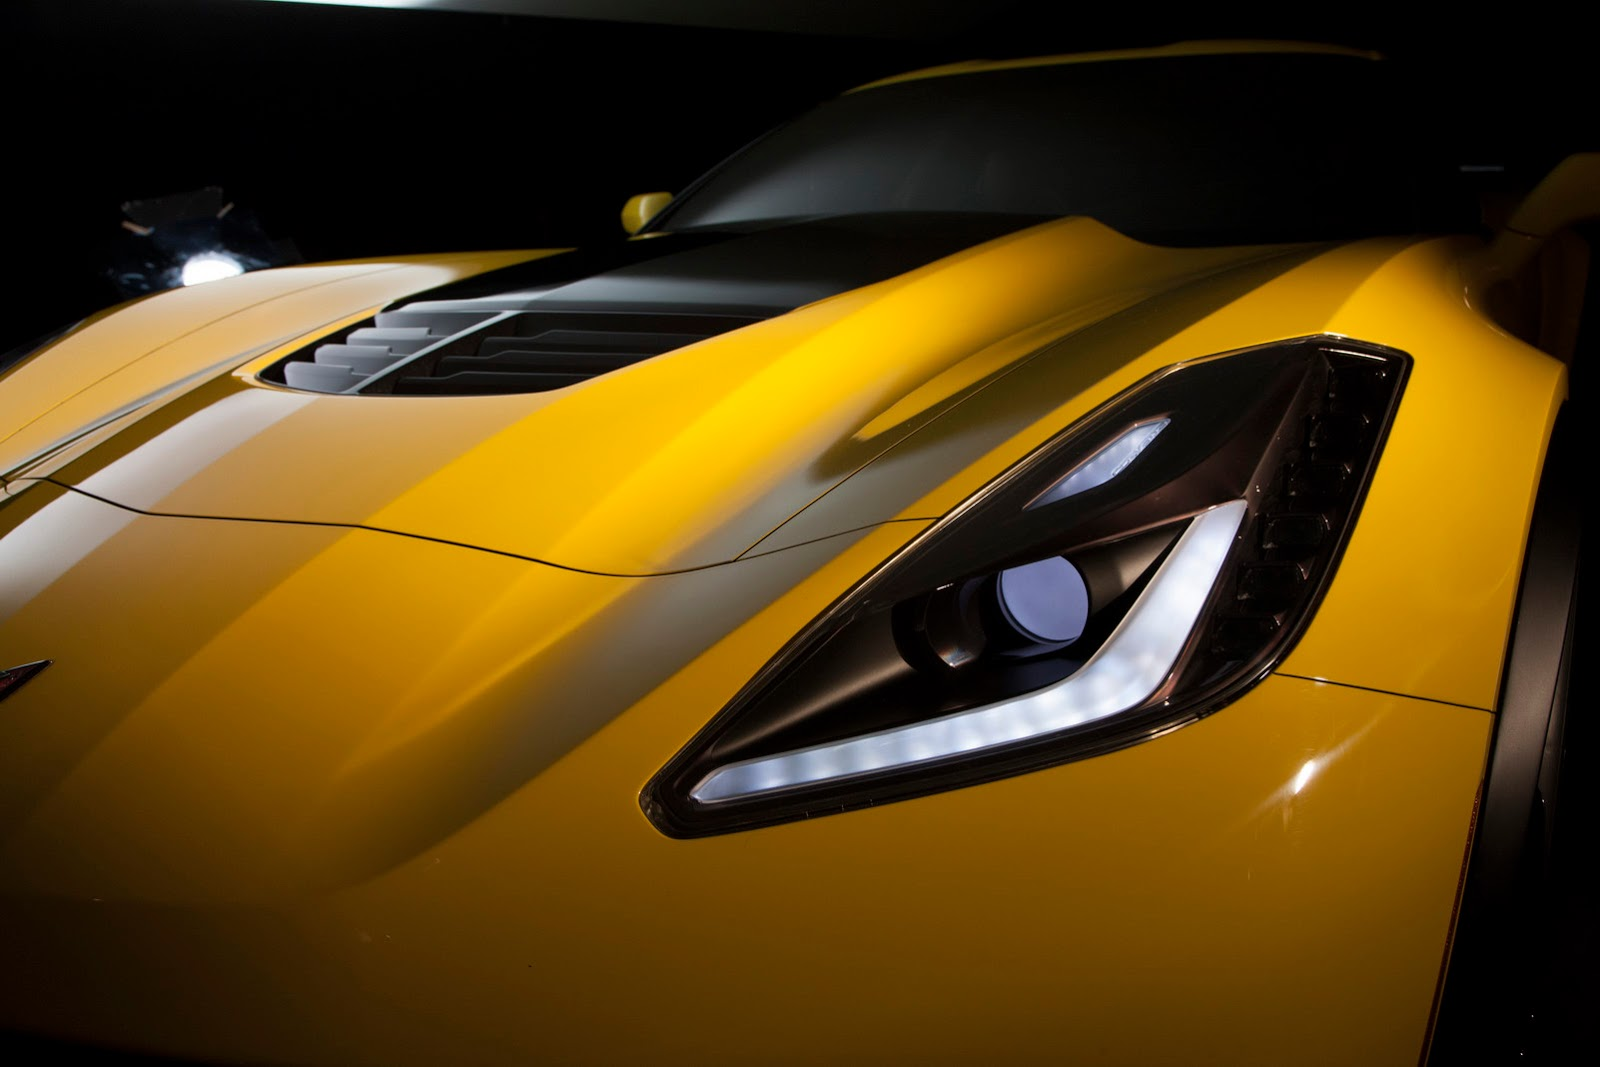 hood with functional hood vent is standard on the 2015 Corvette Z06